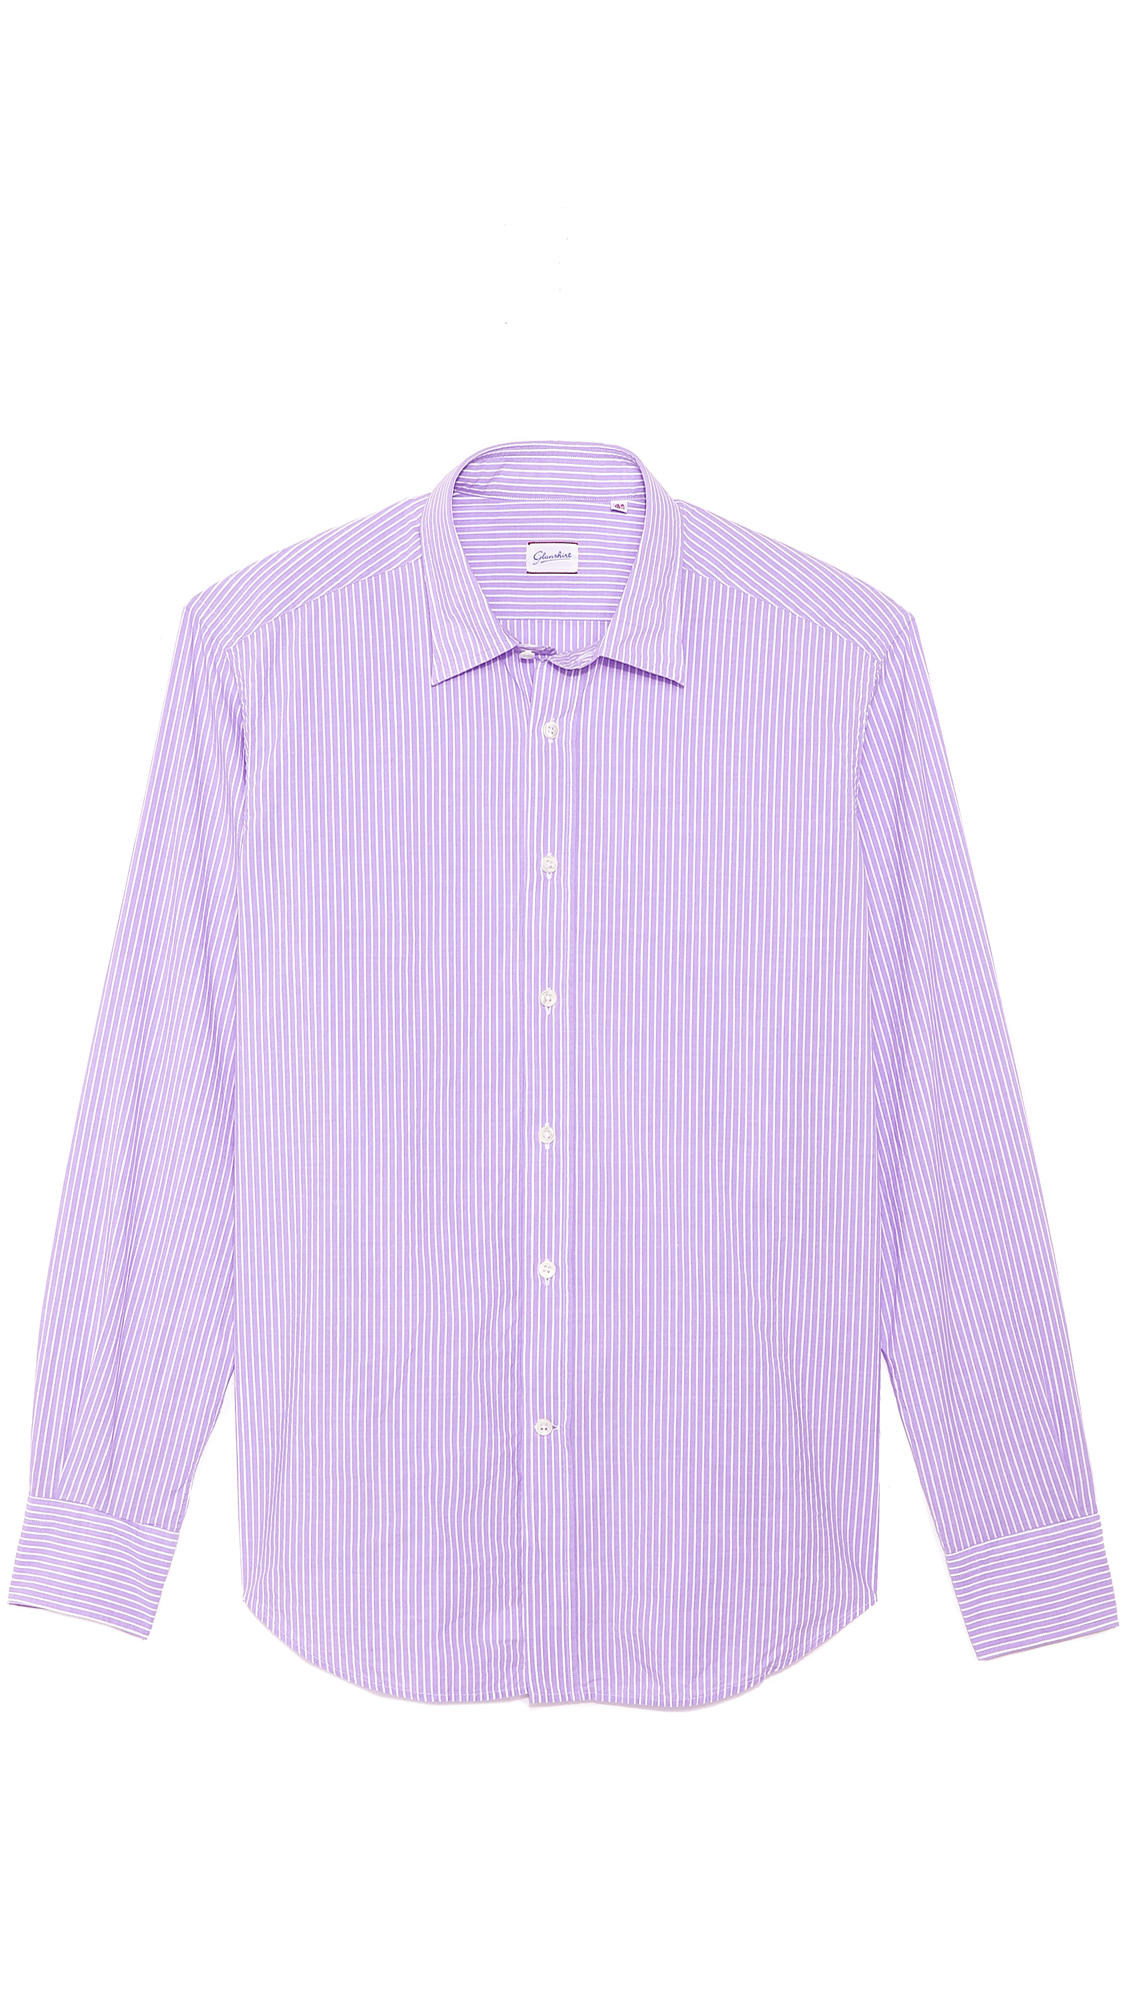 Glanshirt kent striped shirt in purple for men lyst for Purple and black striped t shirt